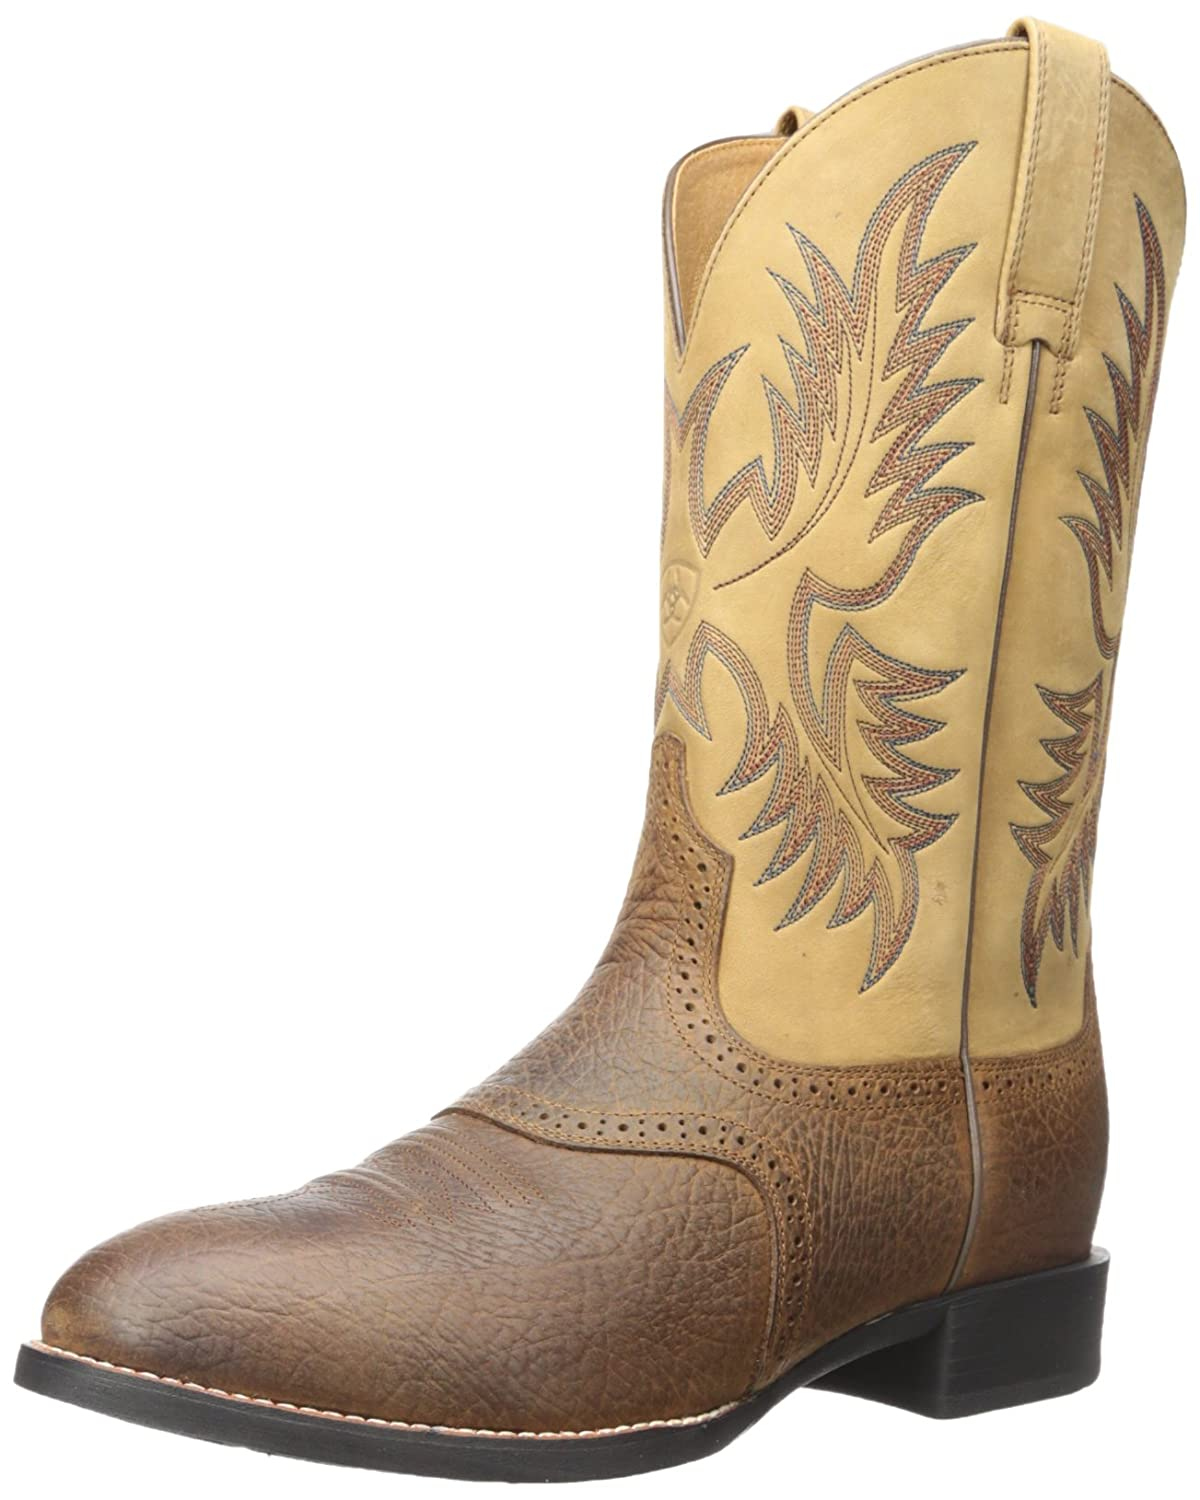 Ariat Men's Heritage Stockman Western Boot B001FY4ARE 10.5 E US|Tumbled Brown/Beige